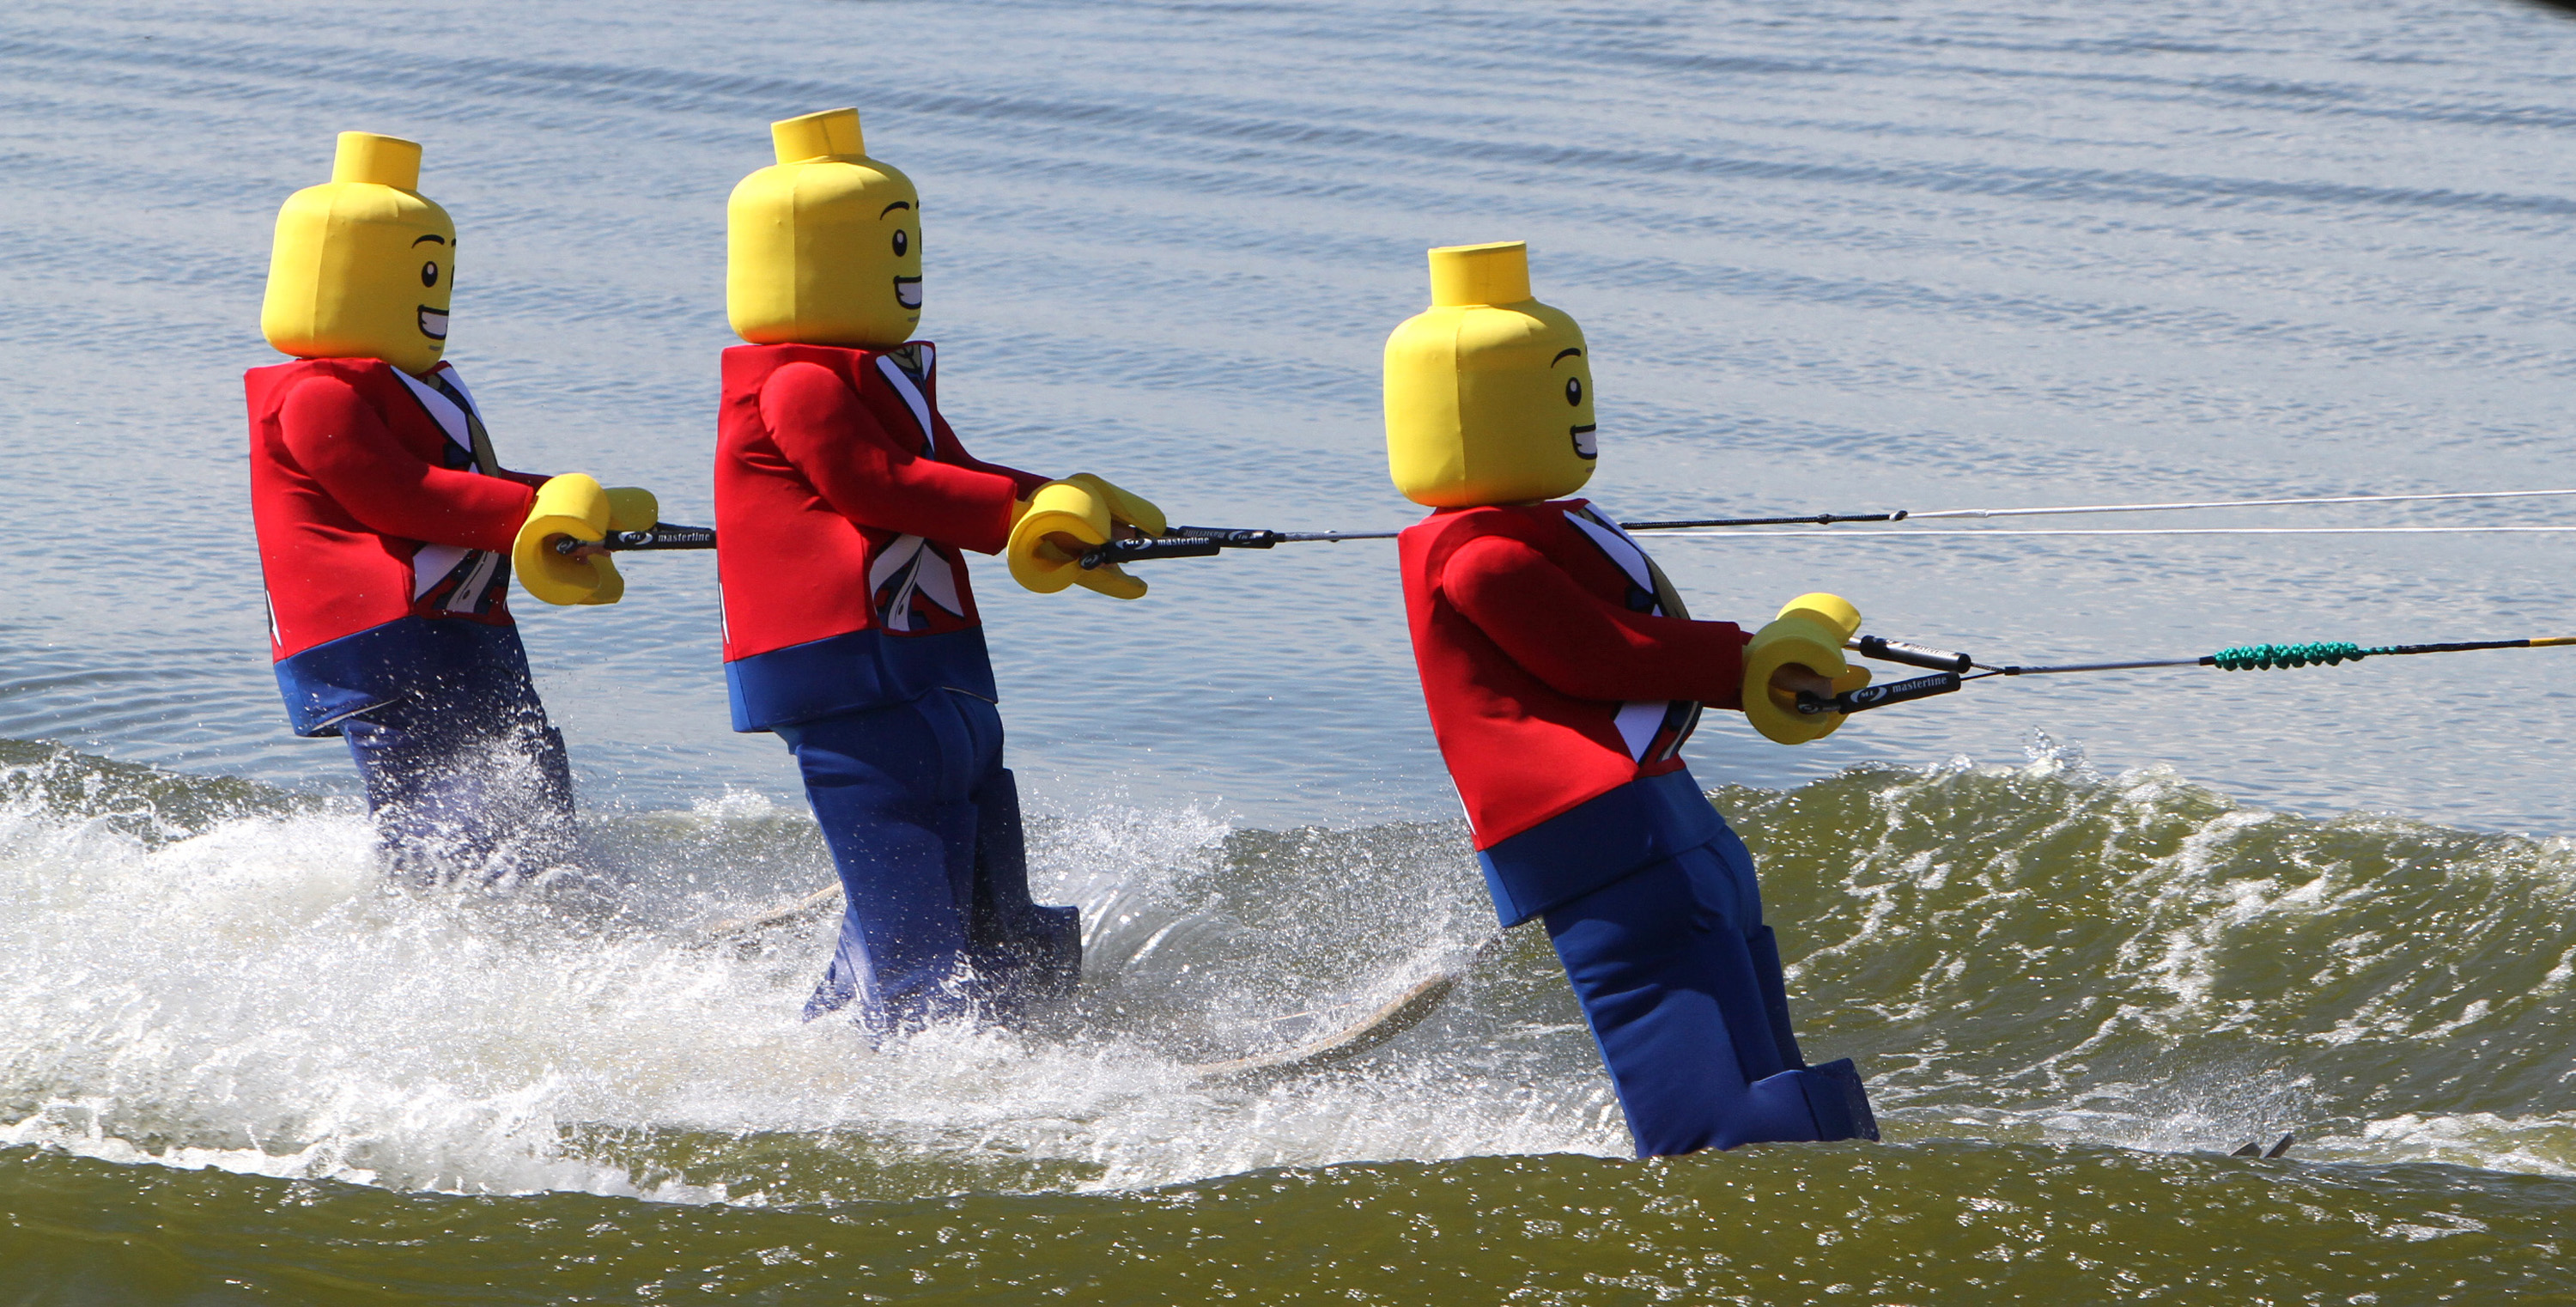 Discover your inner minifigure at Florida's Legoland Beach Retreat